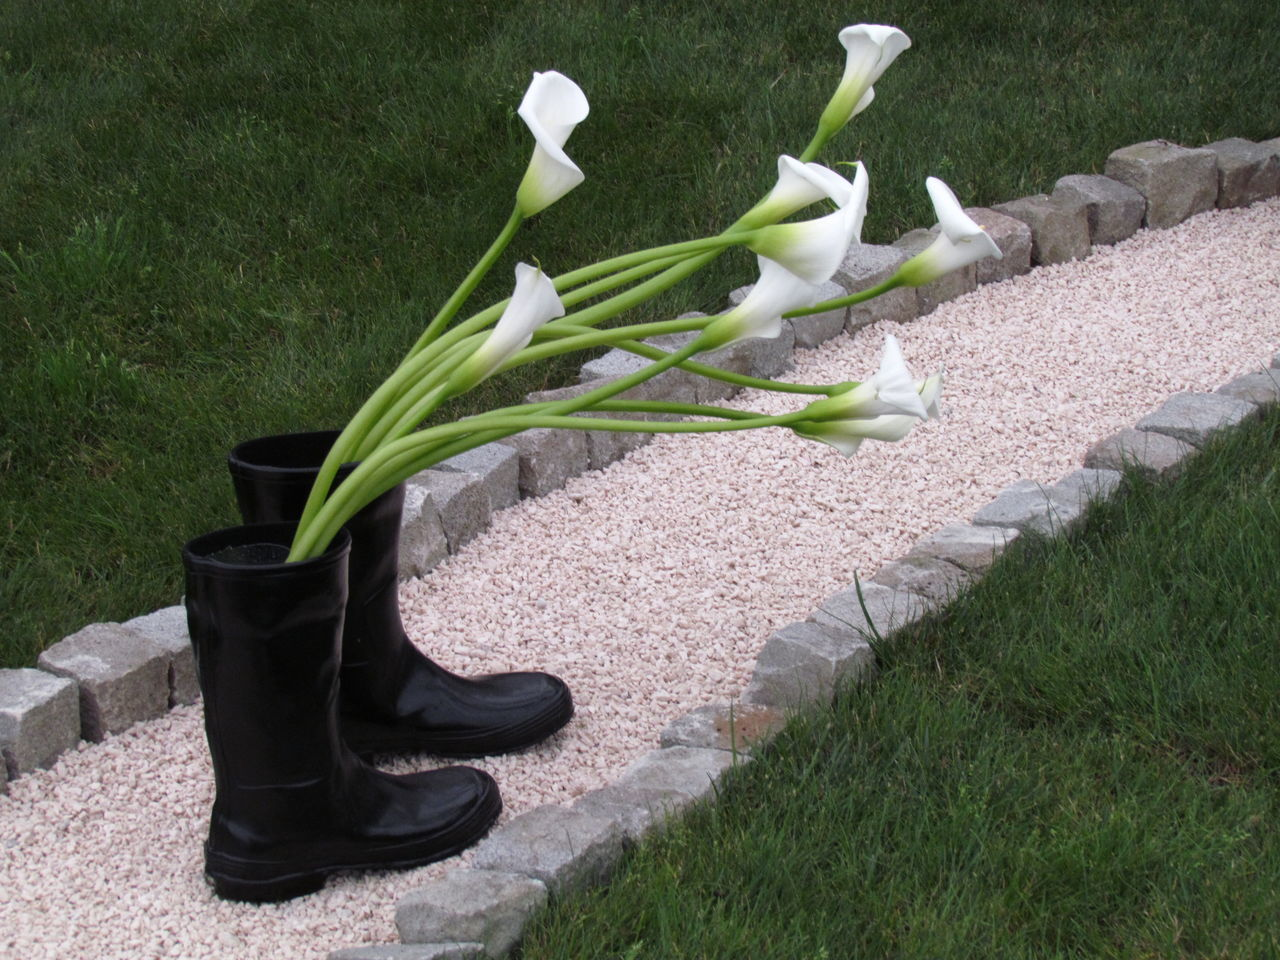 Art Boots Day Flower Flowers Grass Green Color No People Outdoors Rubber Boots